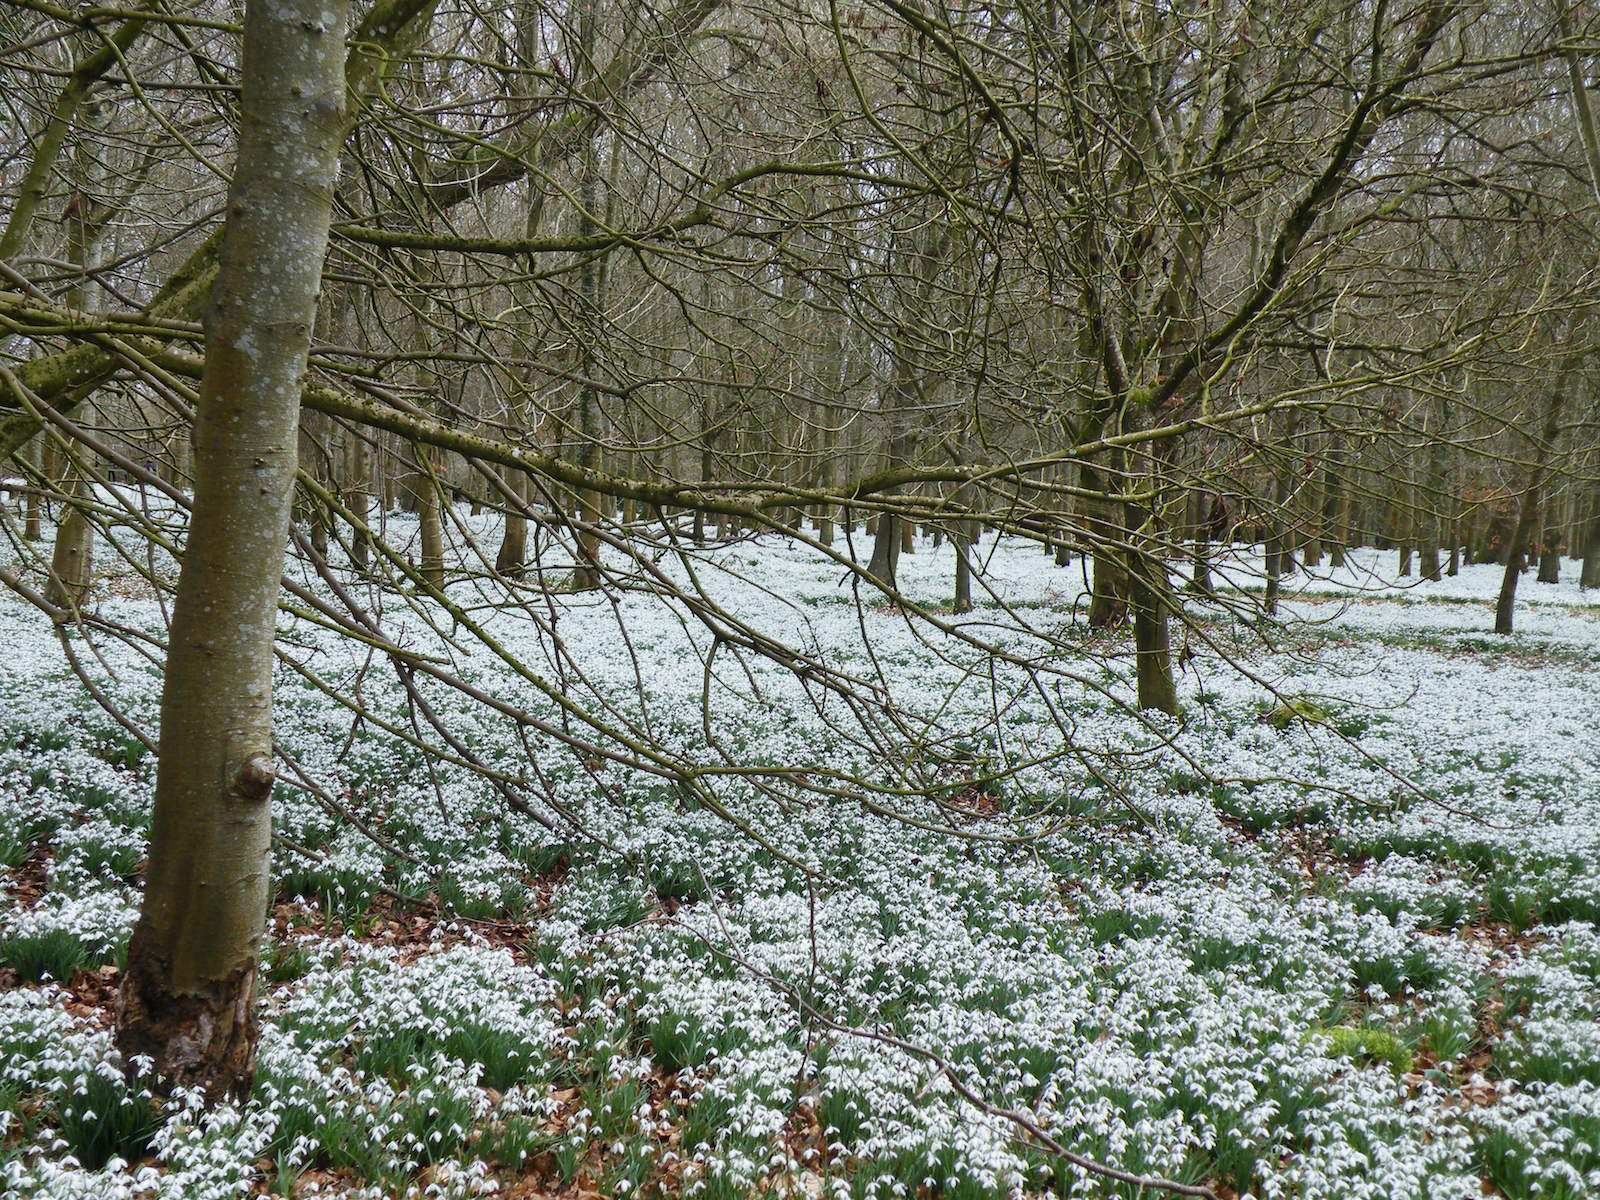 And at last, snowdrops!